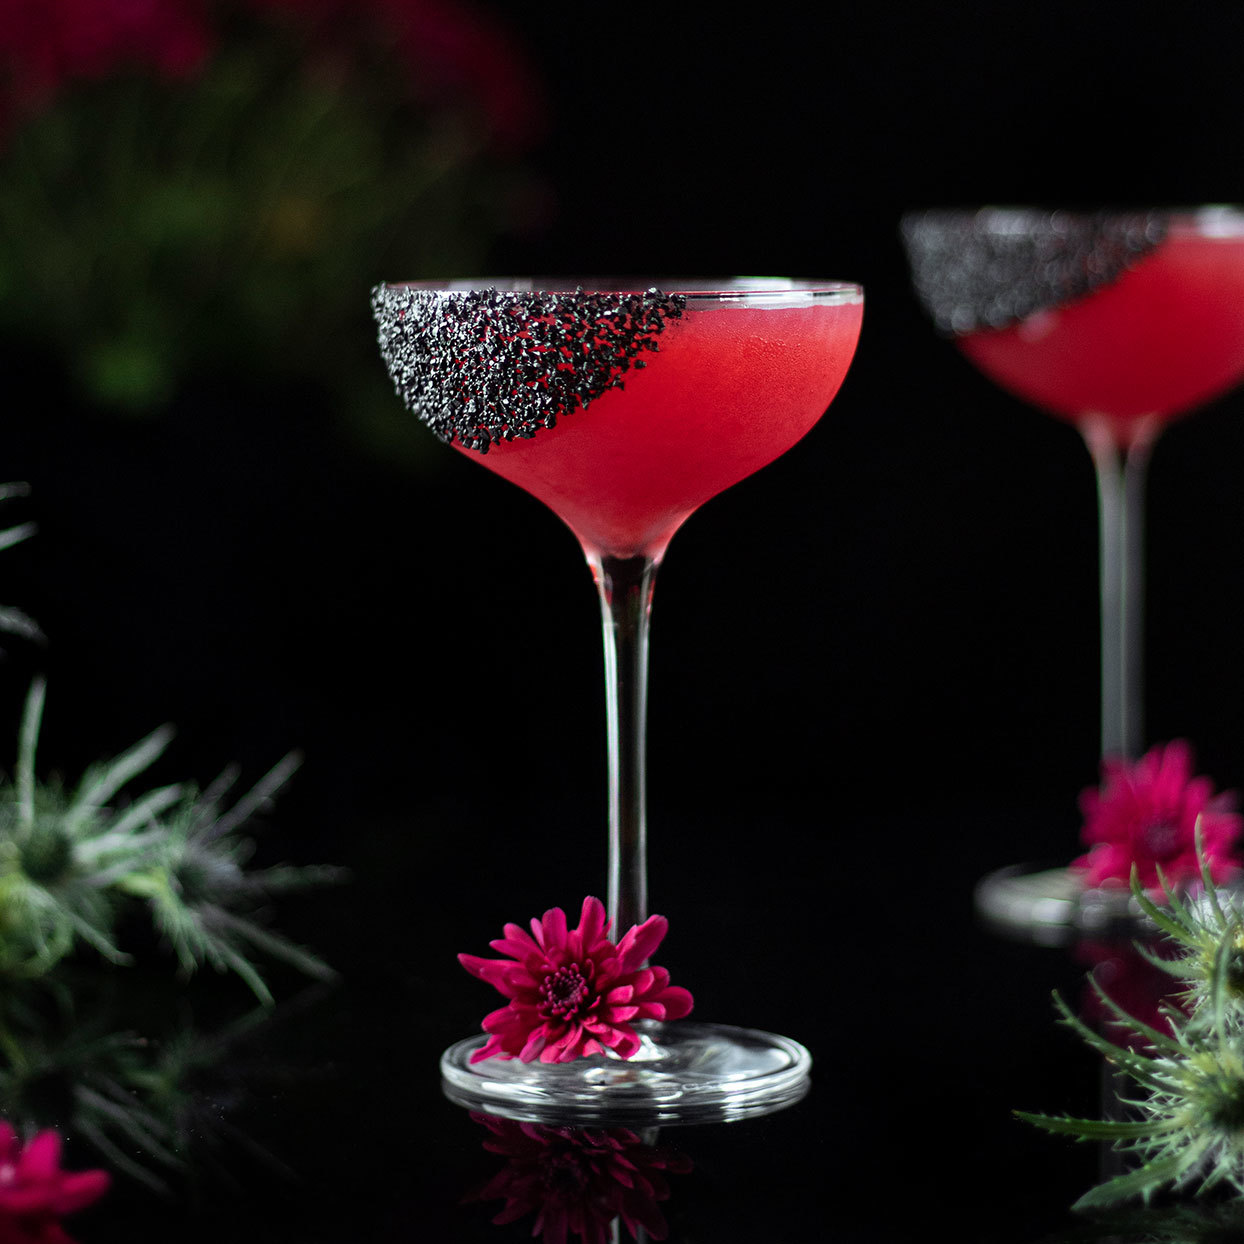 This striking red and black margarita is the perfect Halloween party cocktail. Hibiscus tea and pomegranate tea give the citrusy cocktail its red color, and rimming the glass with black lava salt makes it just a little creepy. Use regular kosher salt in place of the black lava salt (or skip the salt altogether) for a cocktail that works any time of year. We love the tartness of this margarita, but feel free to add a little agave nectar if you prefer a sweeter cocktail.